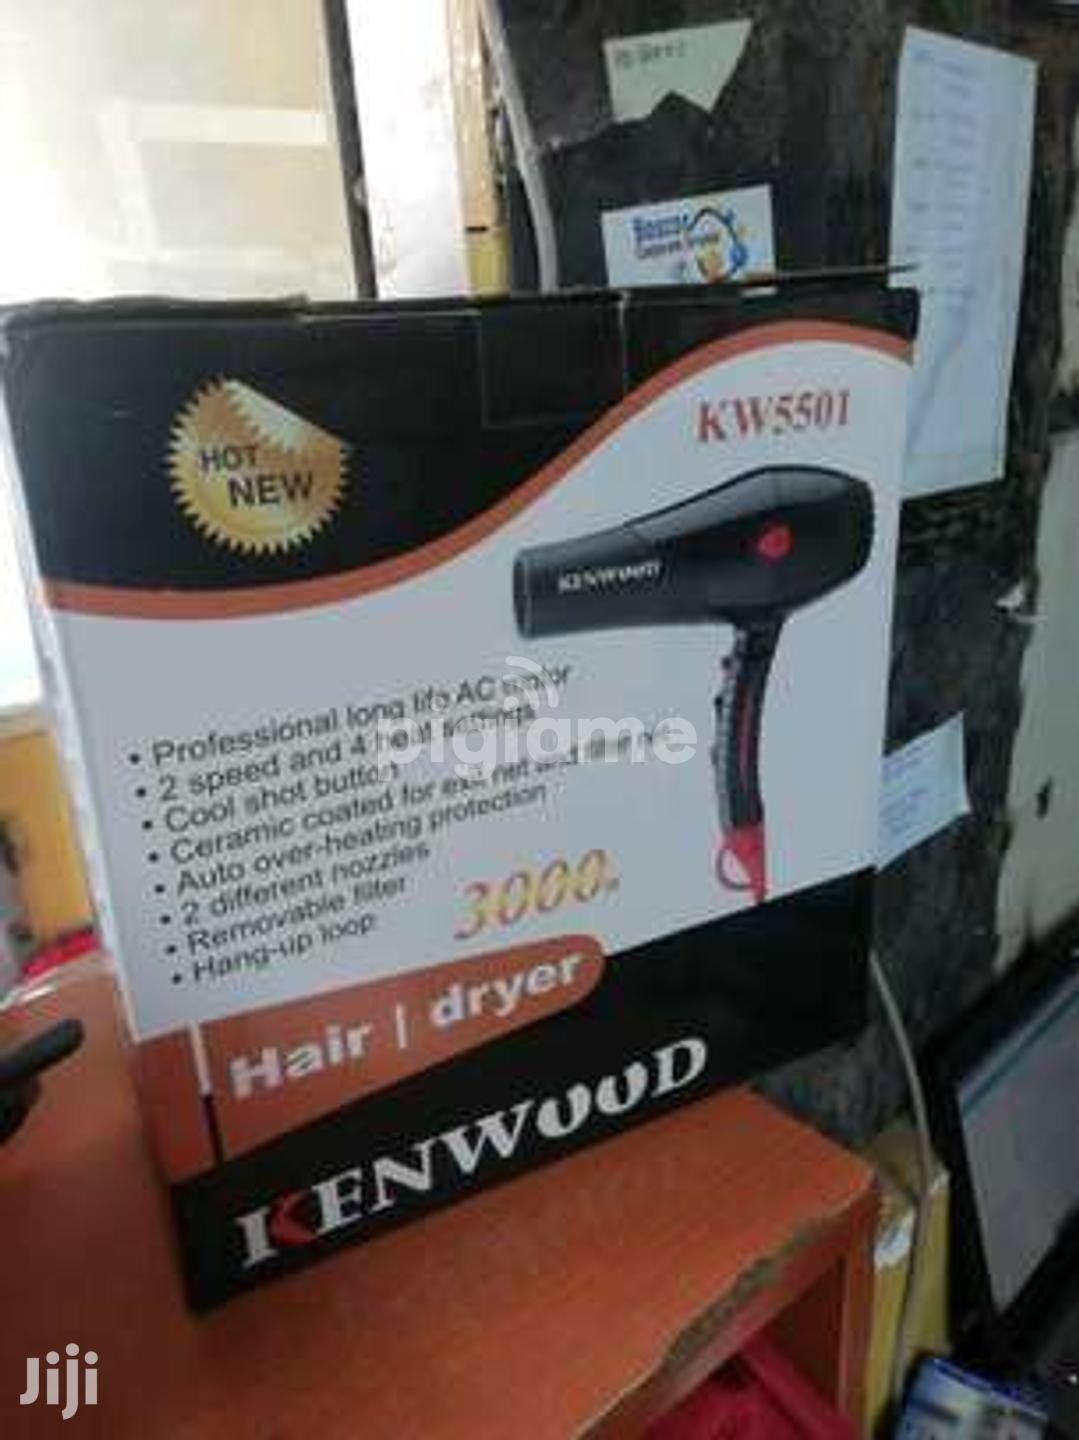 Hair Dryer | Tools & Accessories for sale in Agbogbloshie, Greater Accra, Ghana